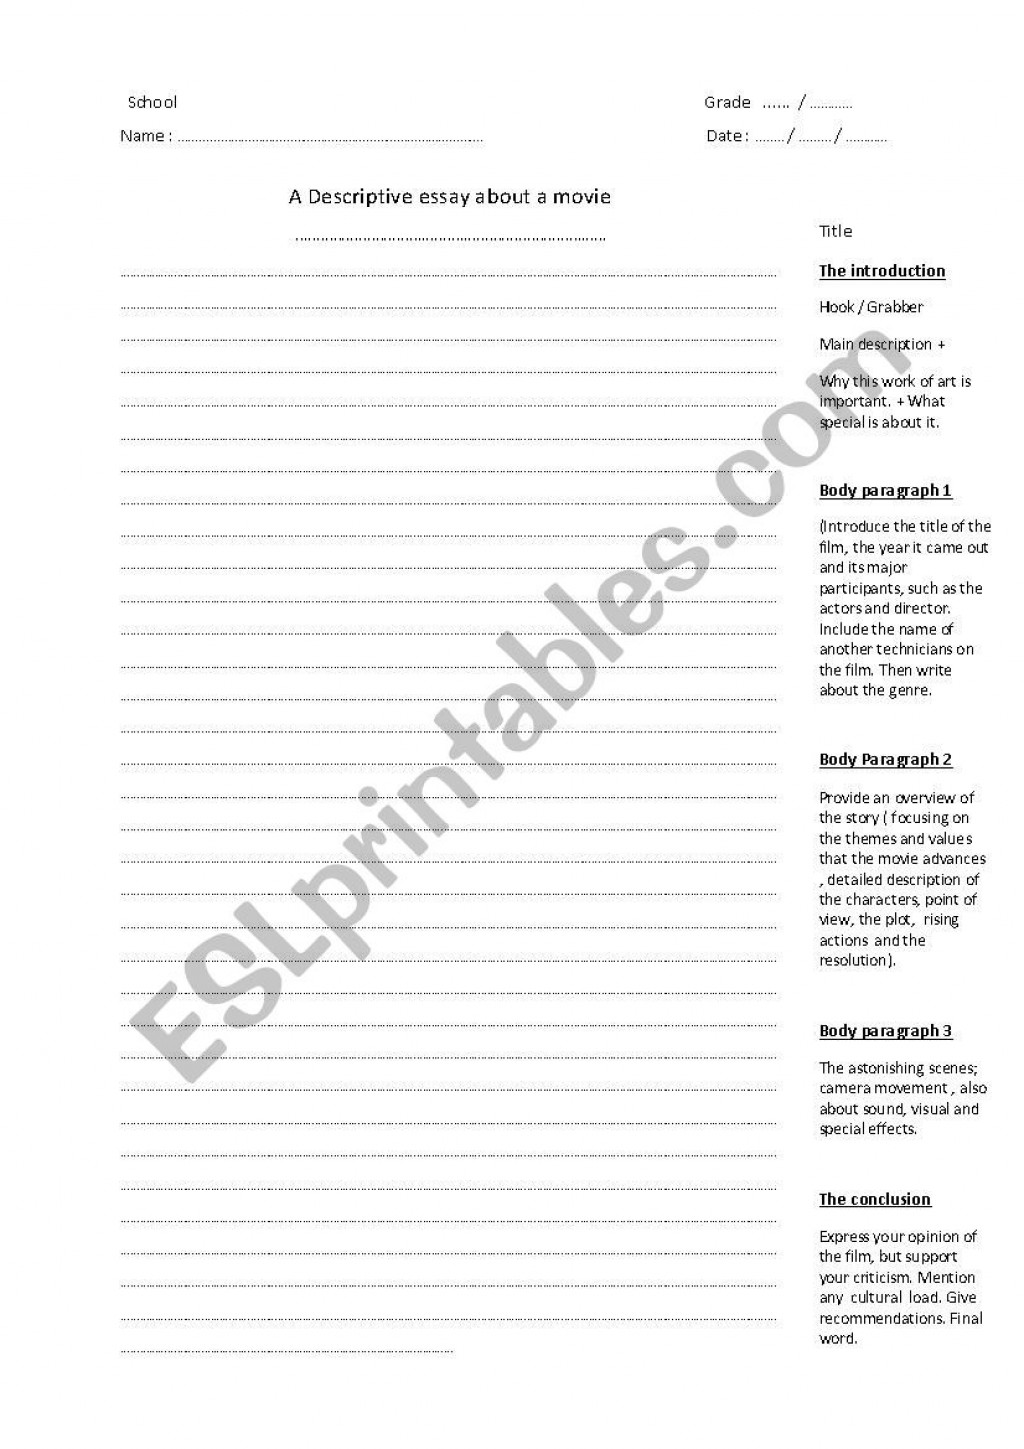 018 869976 1 Essay Format For Writing A Descriptive Imposing Spm Pdf Large